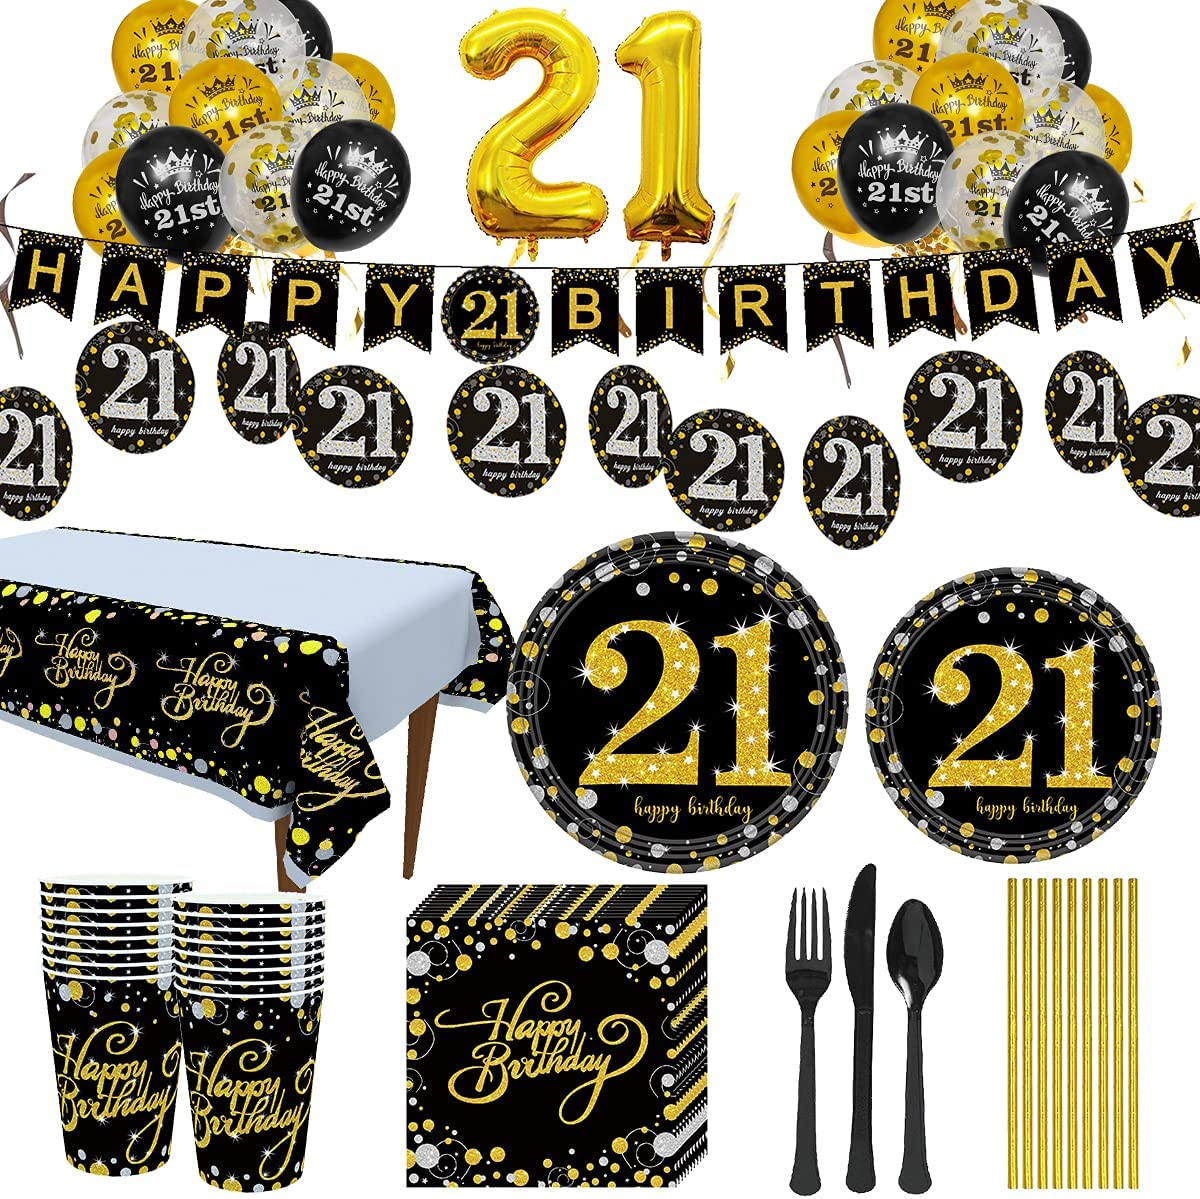 Trgowaul 21st Birthday Party Supplies Gold - Trust Disposabl and Black Large-scale sale